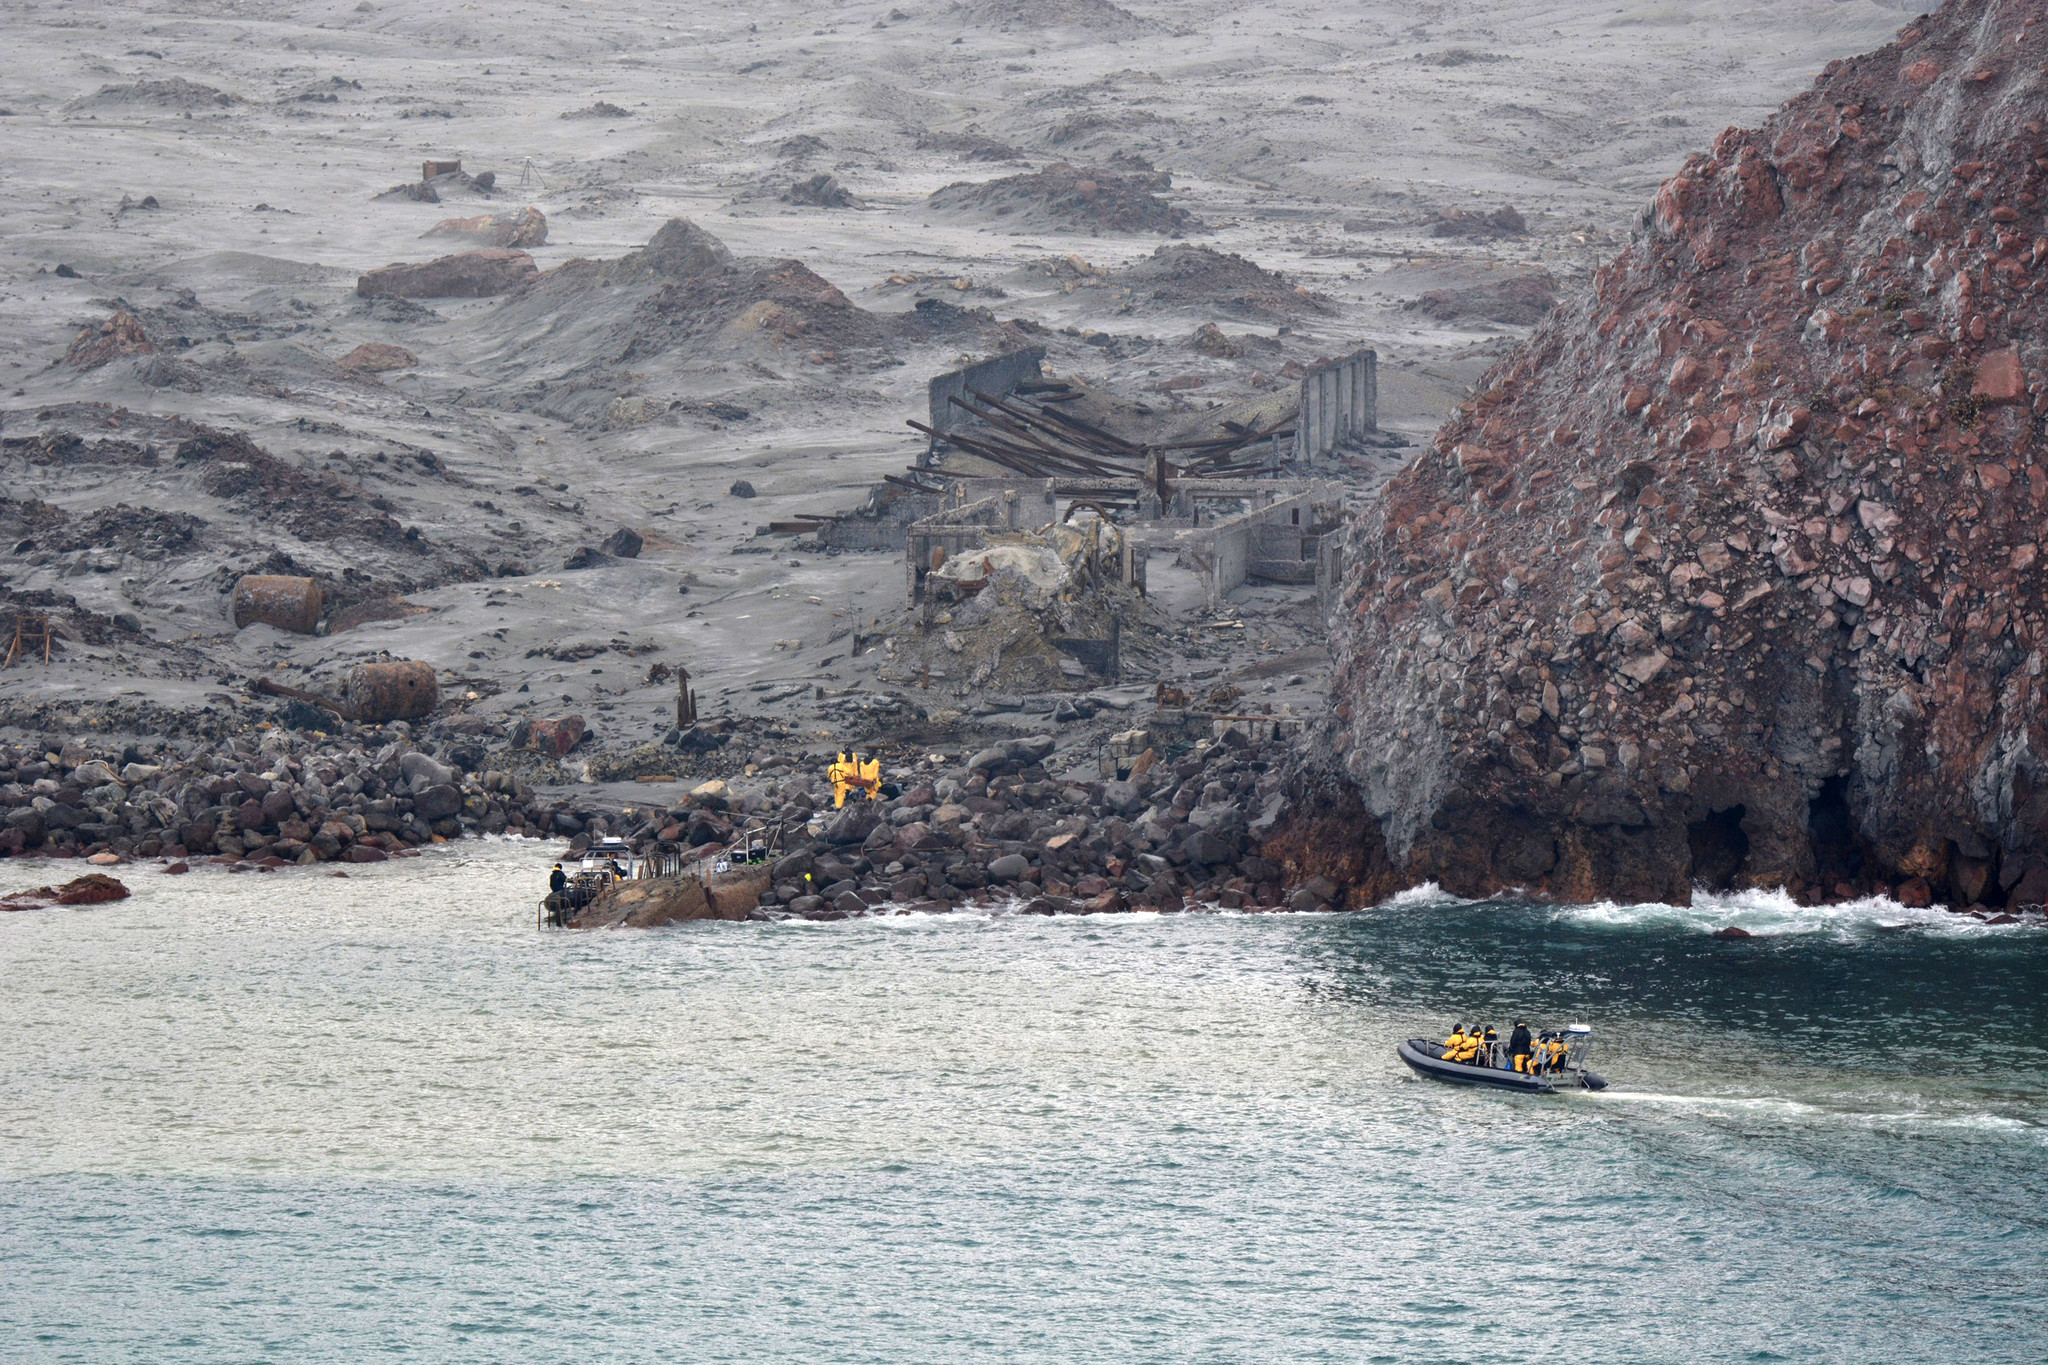 Six bodies recovered from New Zealand island after volcanic eruption, two still missing